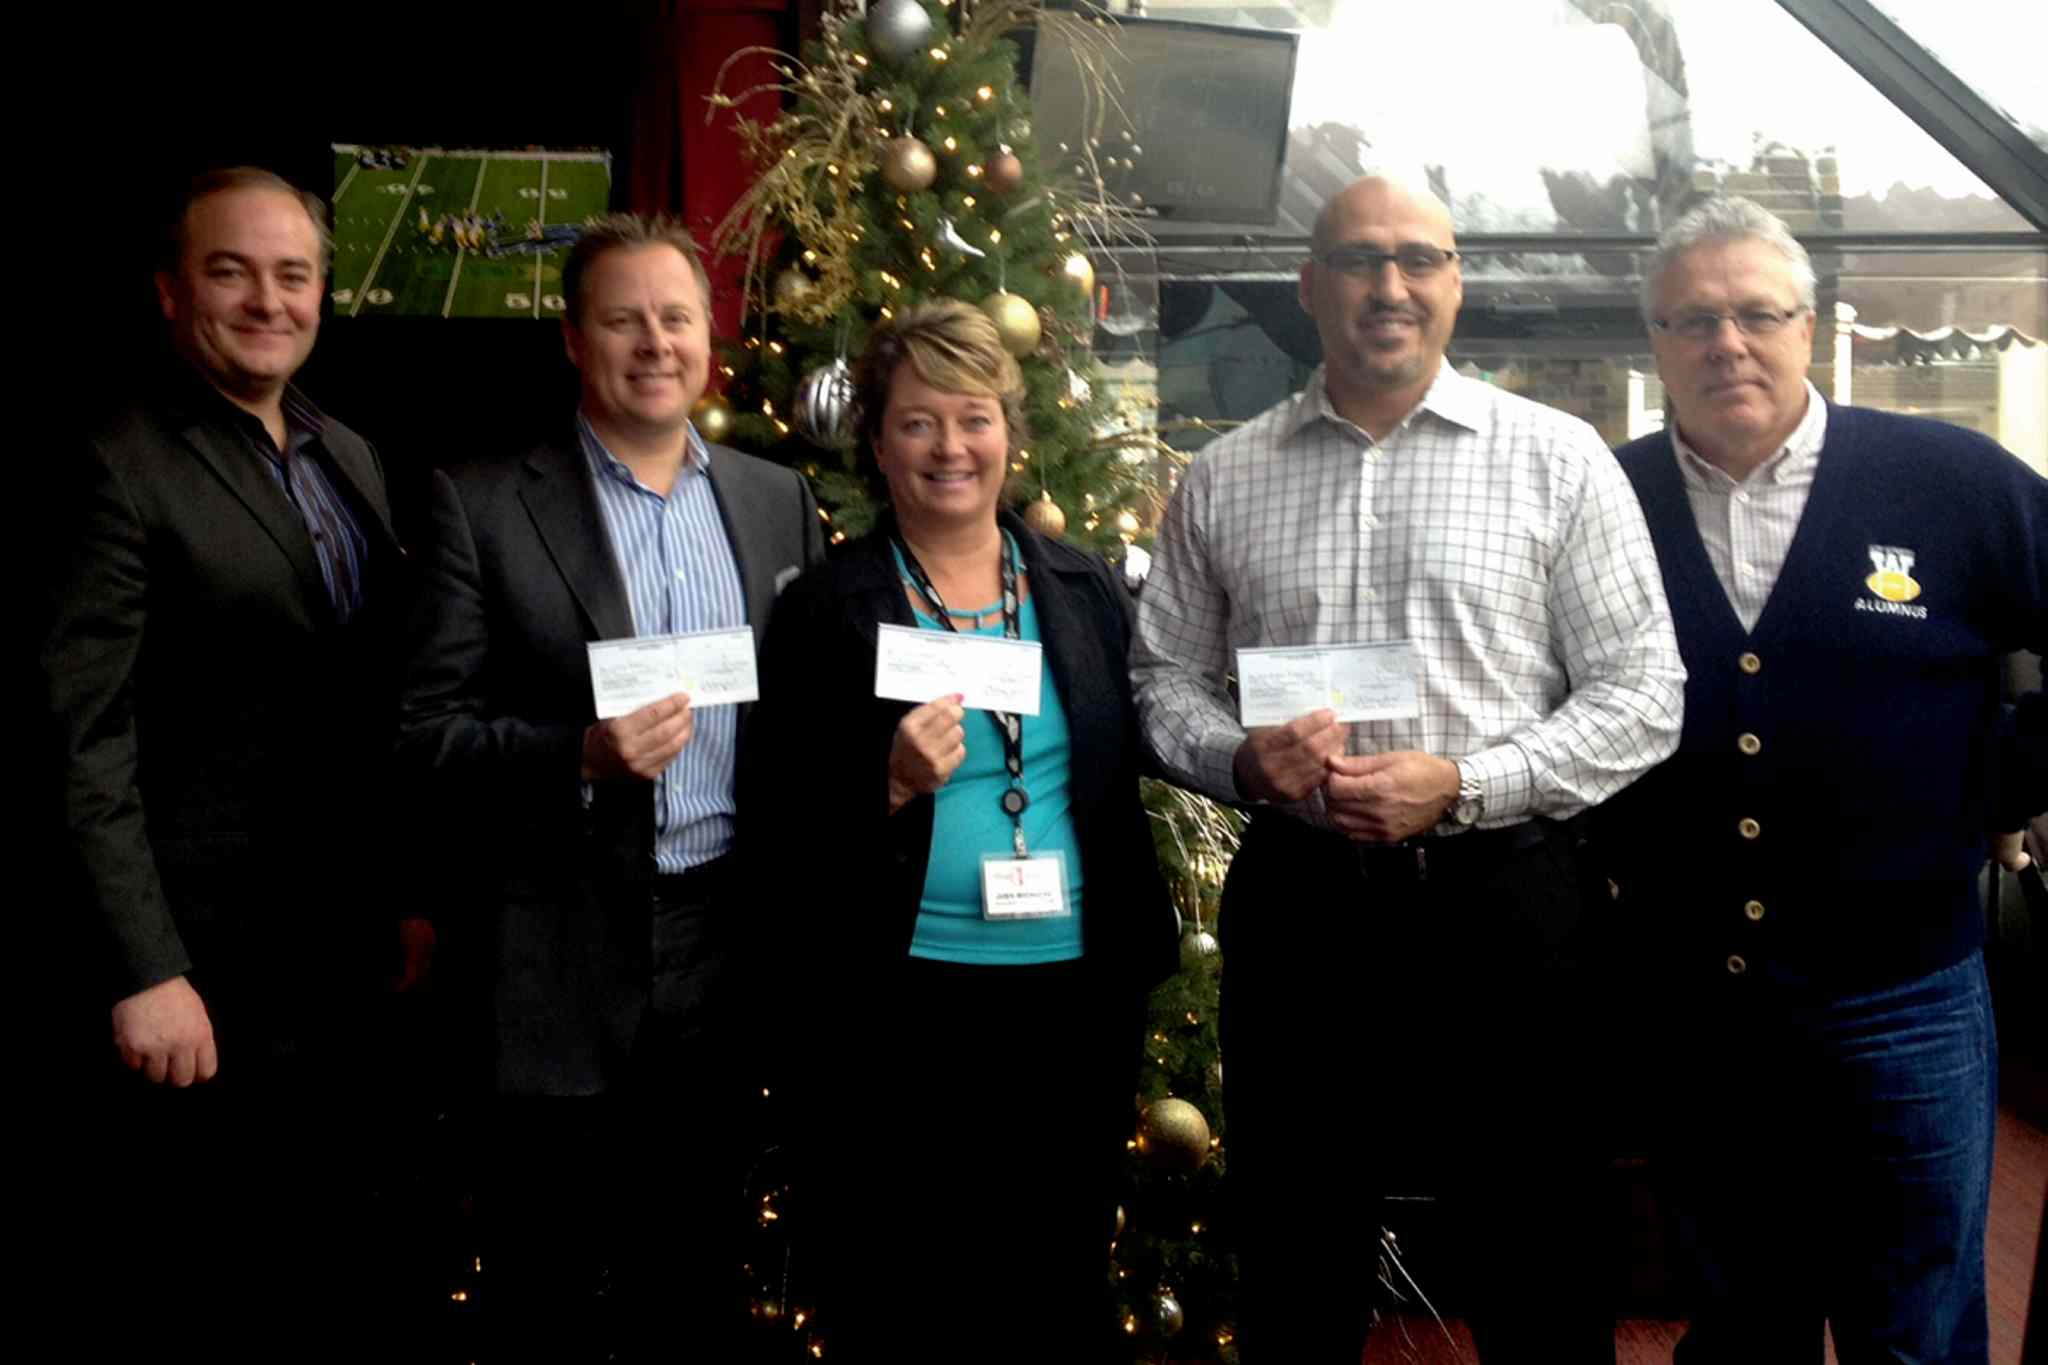 (Left to right) Anthony Wiebe of Scotiabank, Doug Warkentin of Little Heroes, Judy Richichi of Siloam Mission, Jayson Dzikowicz of Blue Bombers Alumni and Paul Bennett, chair of the Manitoba Heroes committee.